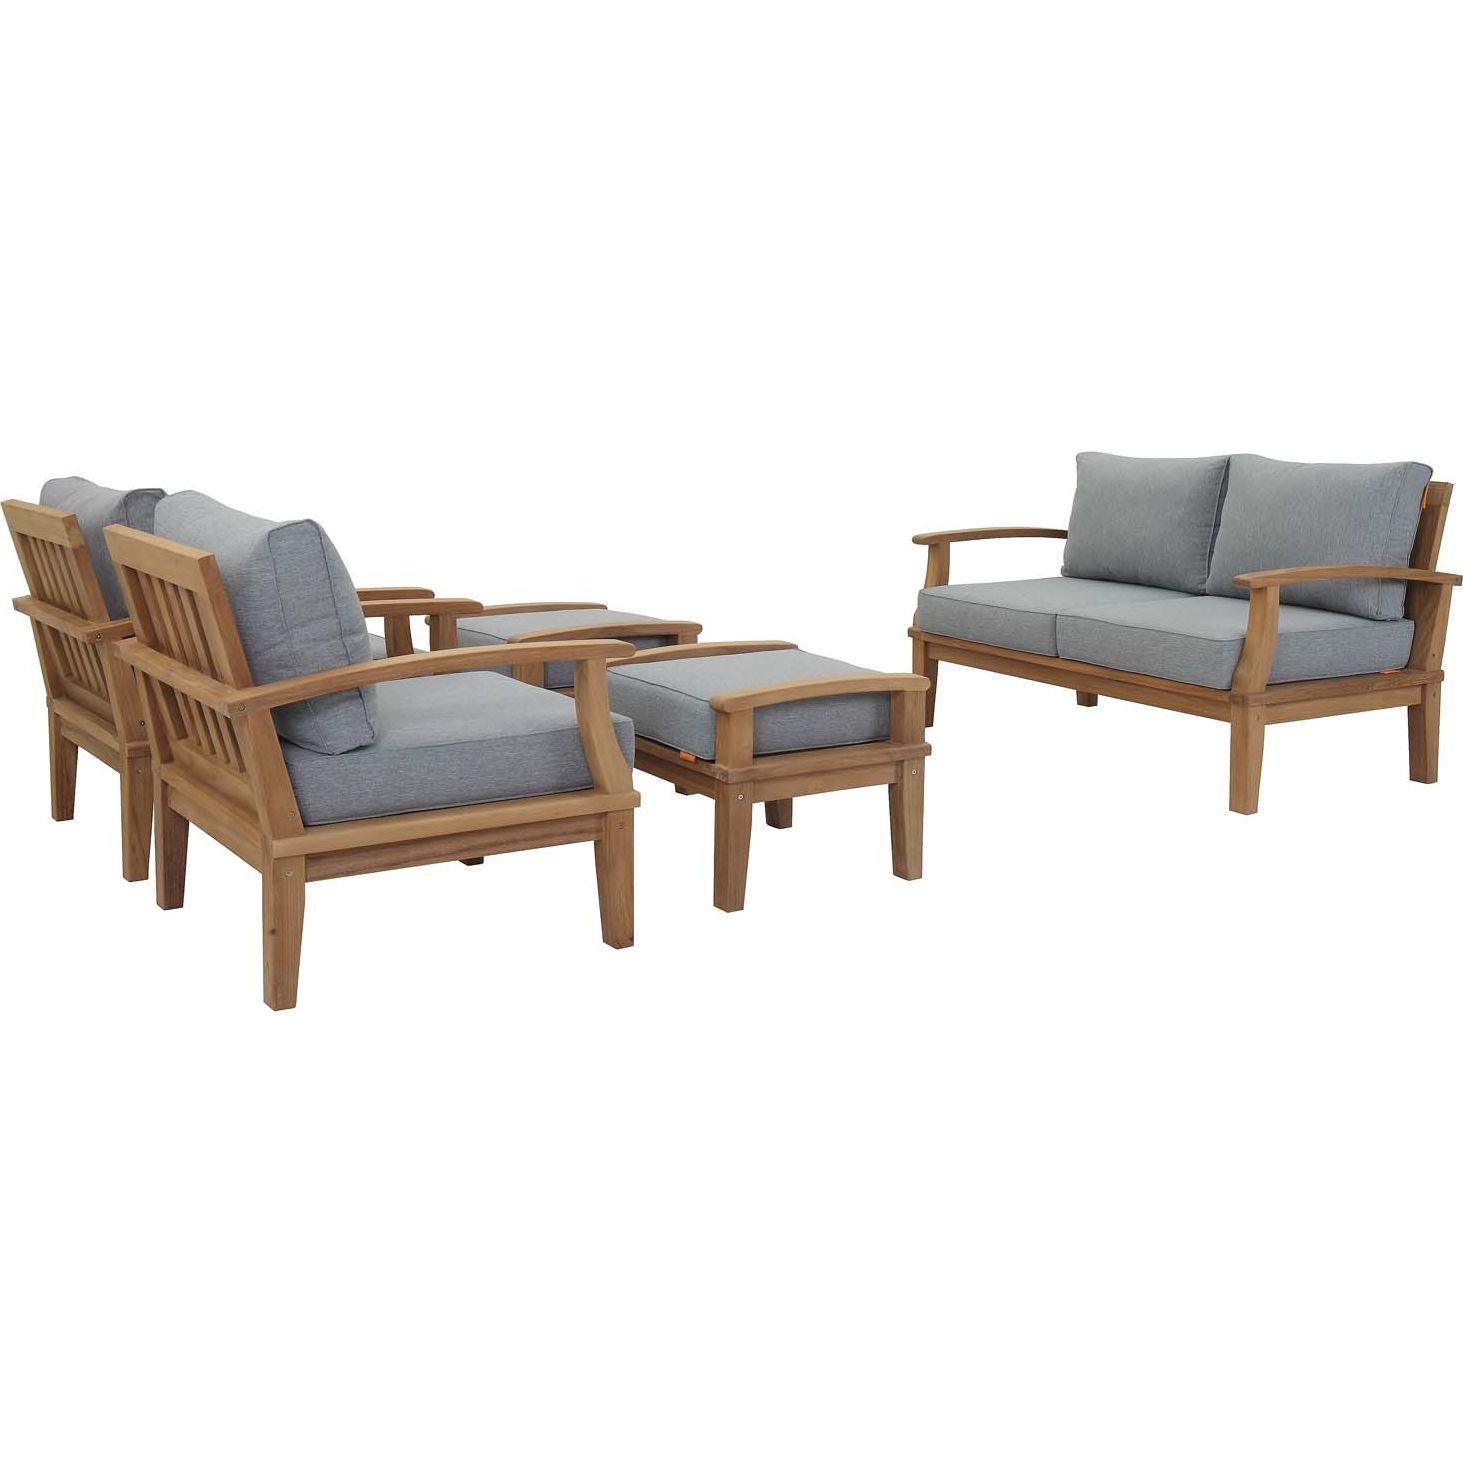 Remarkable Modway Marina 5 Piece Outdoor Sofa Set Teak Gray Fabric In Bralicious Painted Fabric Chair Ideas Braliciousco